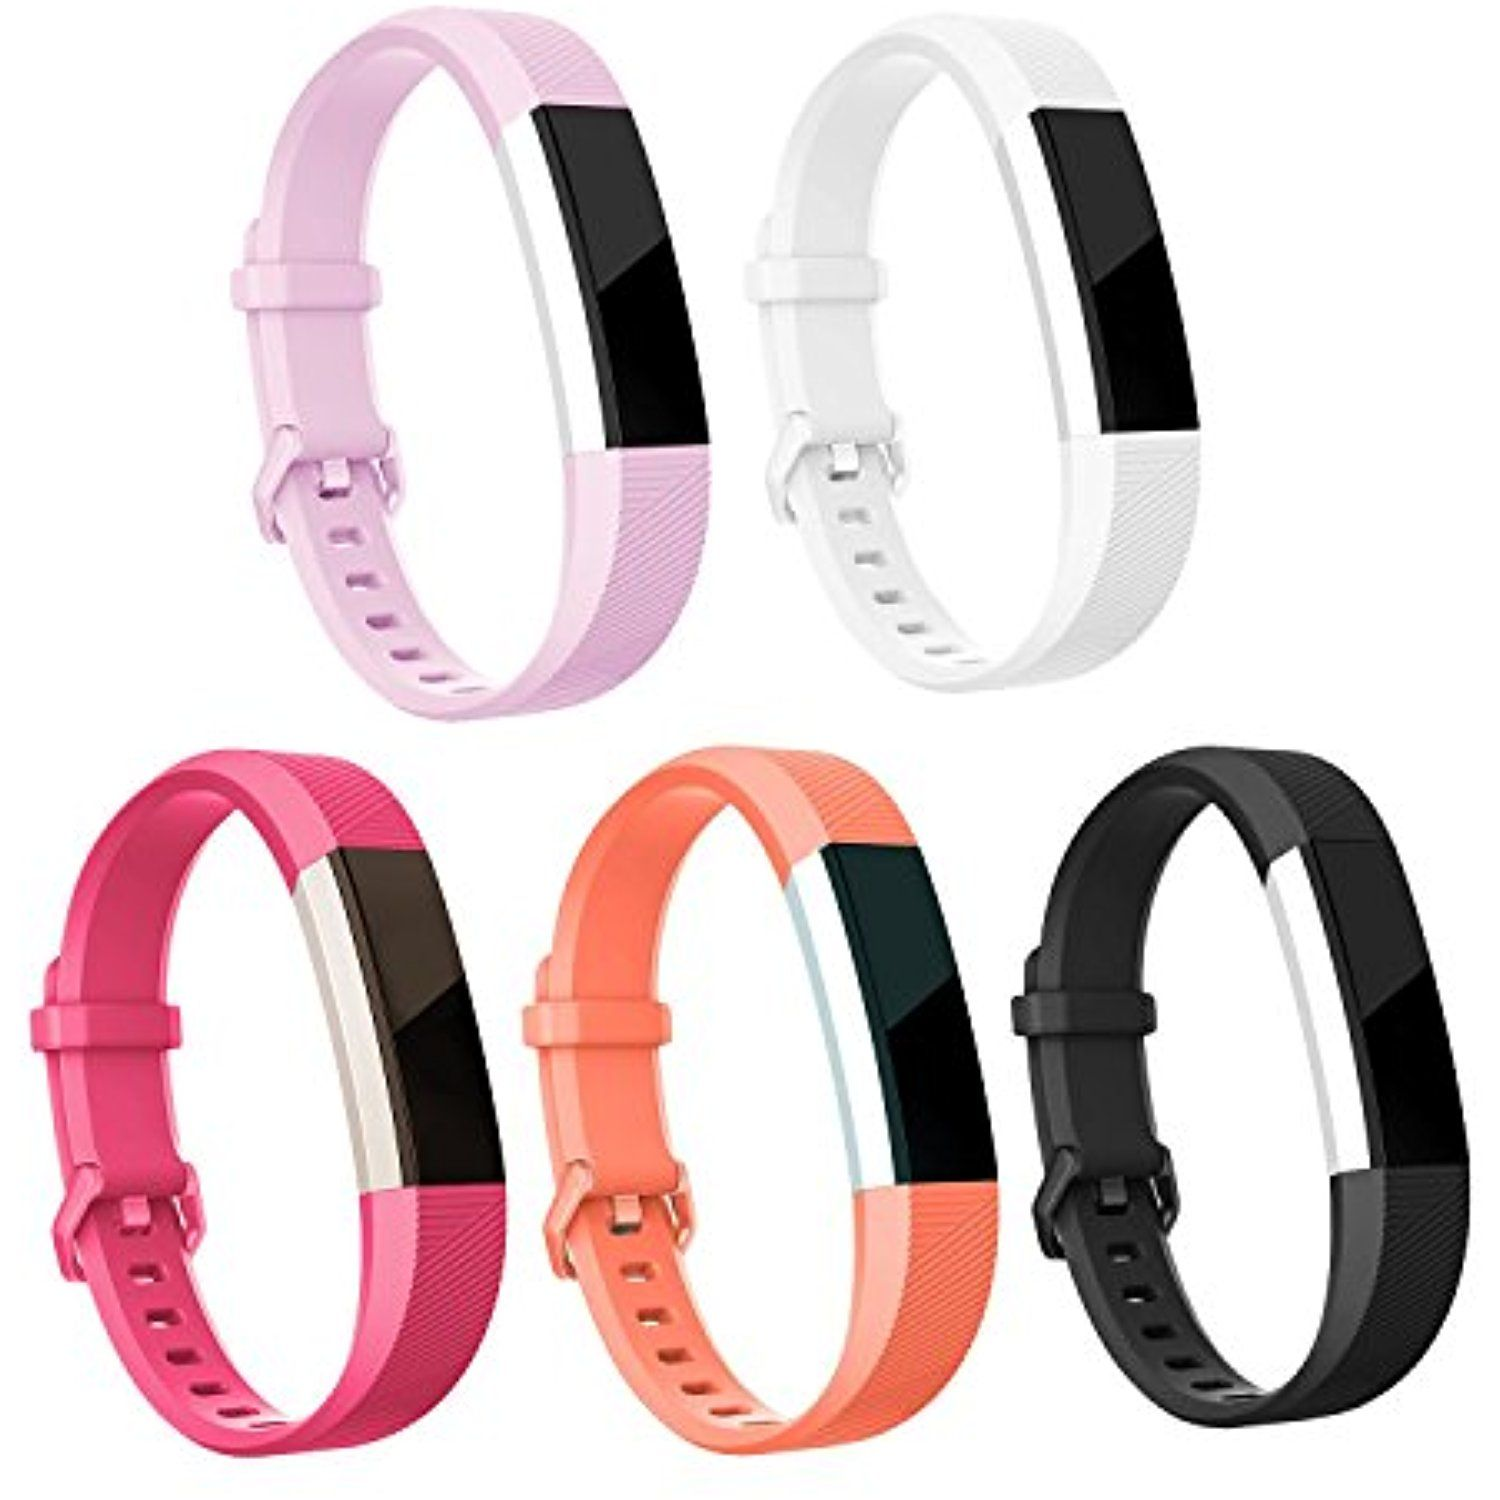 5-Pack Replacement Silicone Wrist Band Strap For Fitbit Alta Fitbit Alta HR